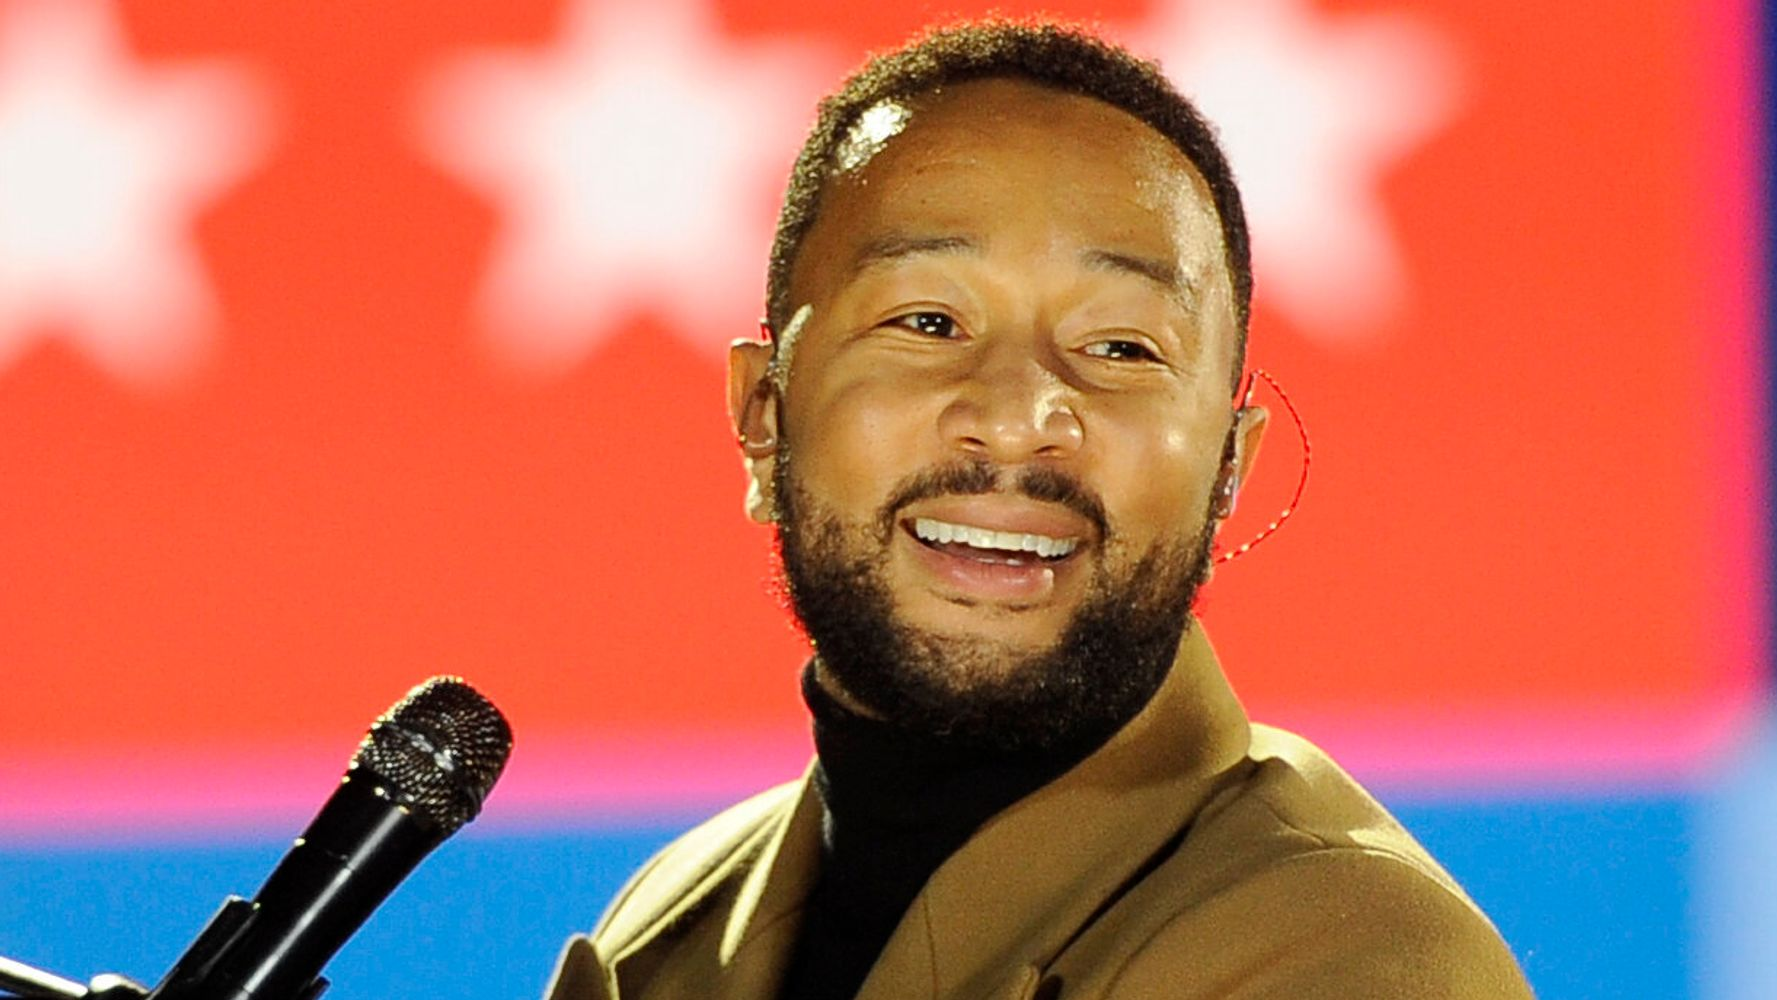 John Legend Bestows Mocking New Name On Donald Trump-Supporting Rappers